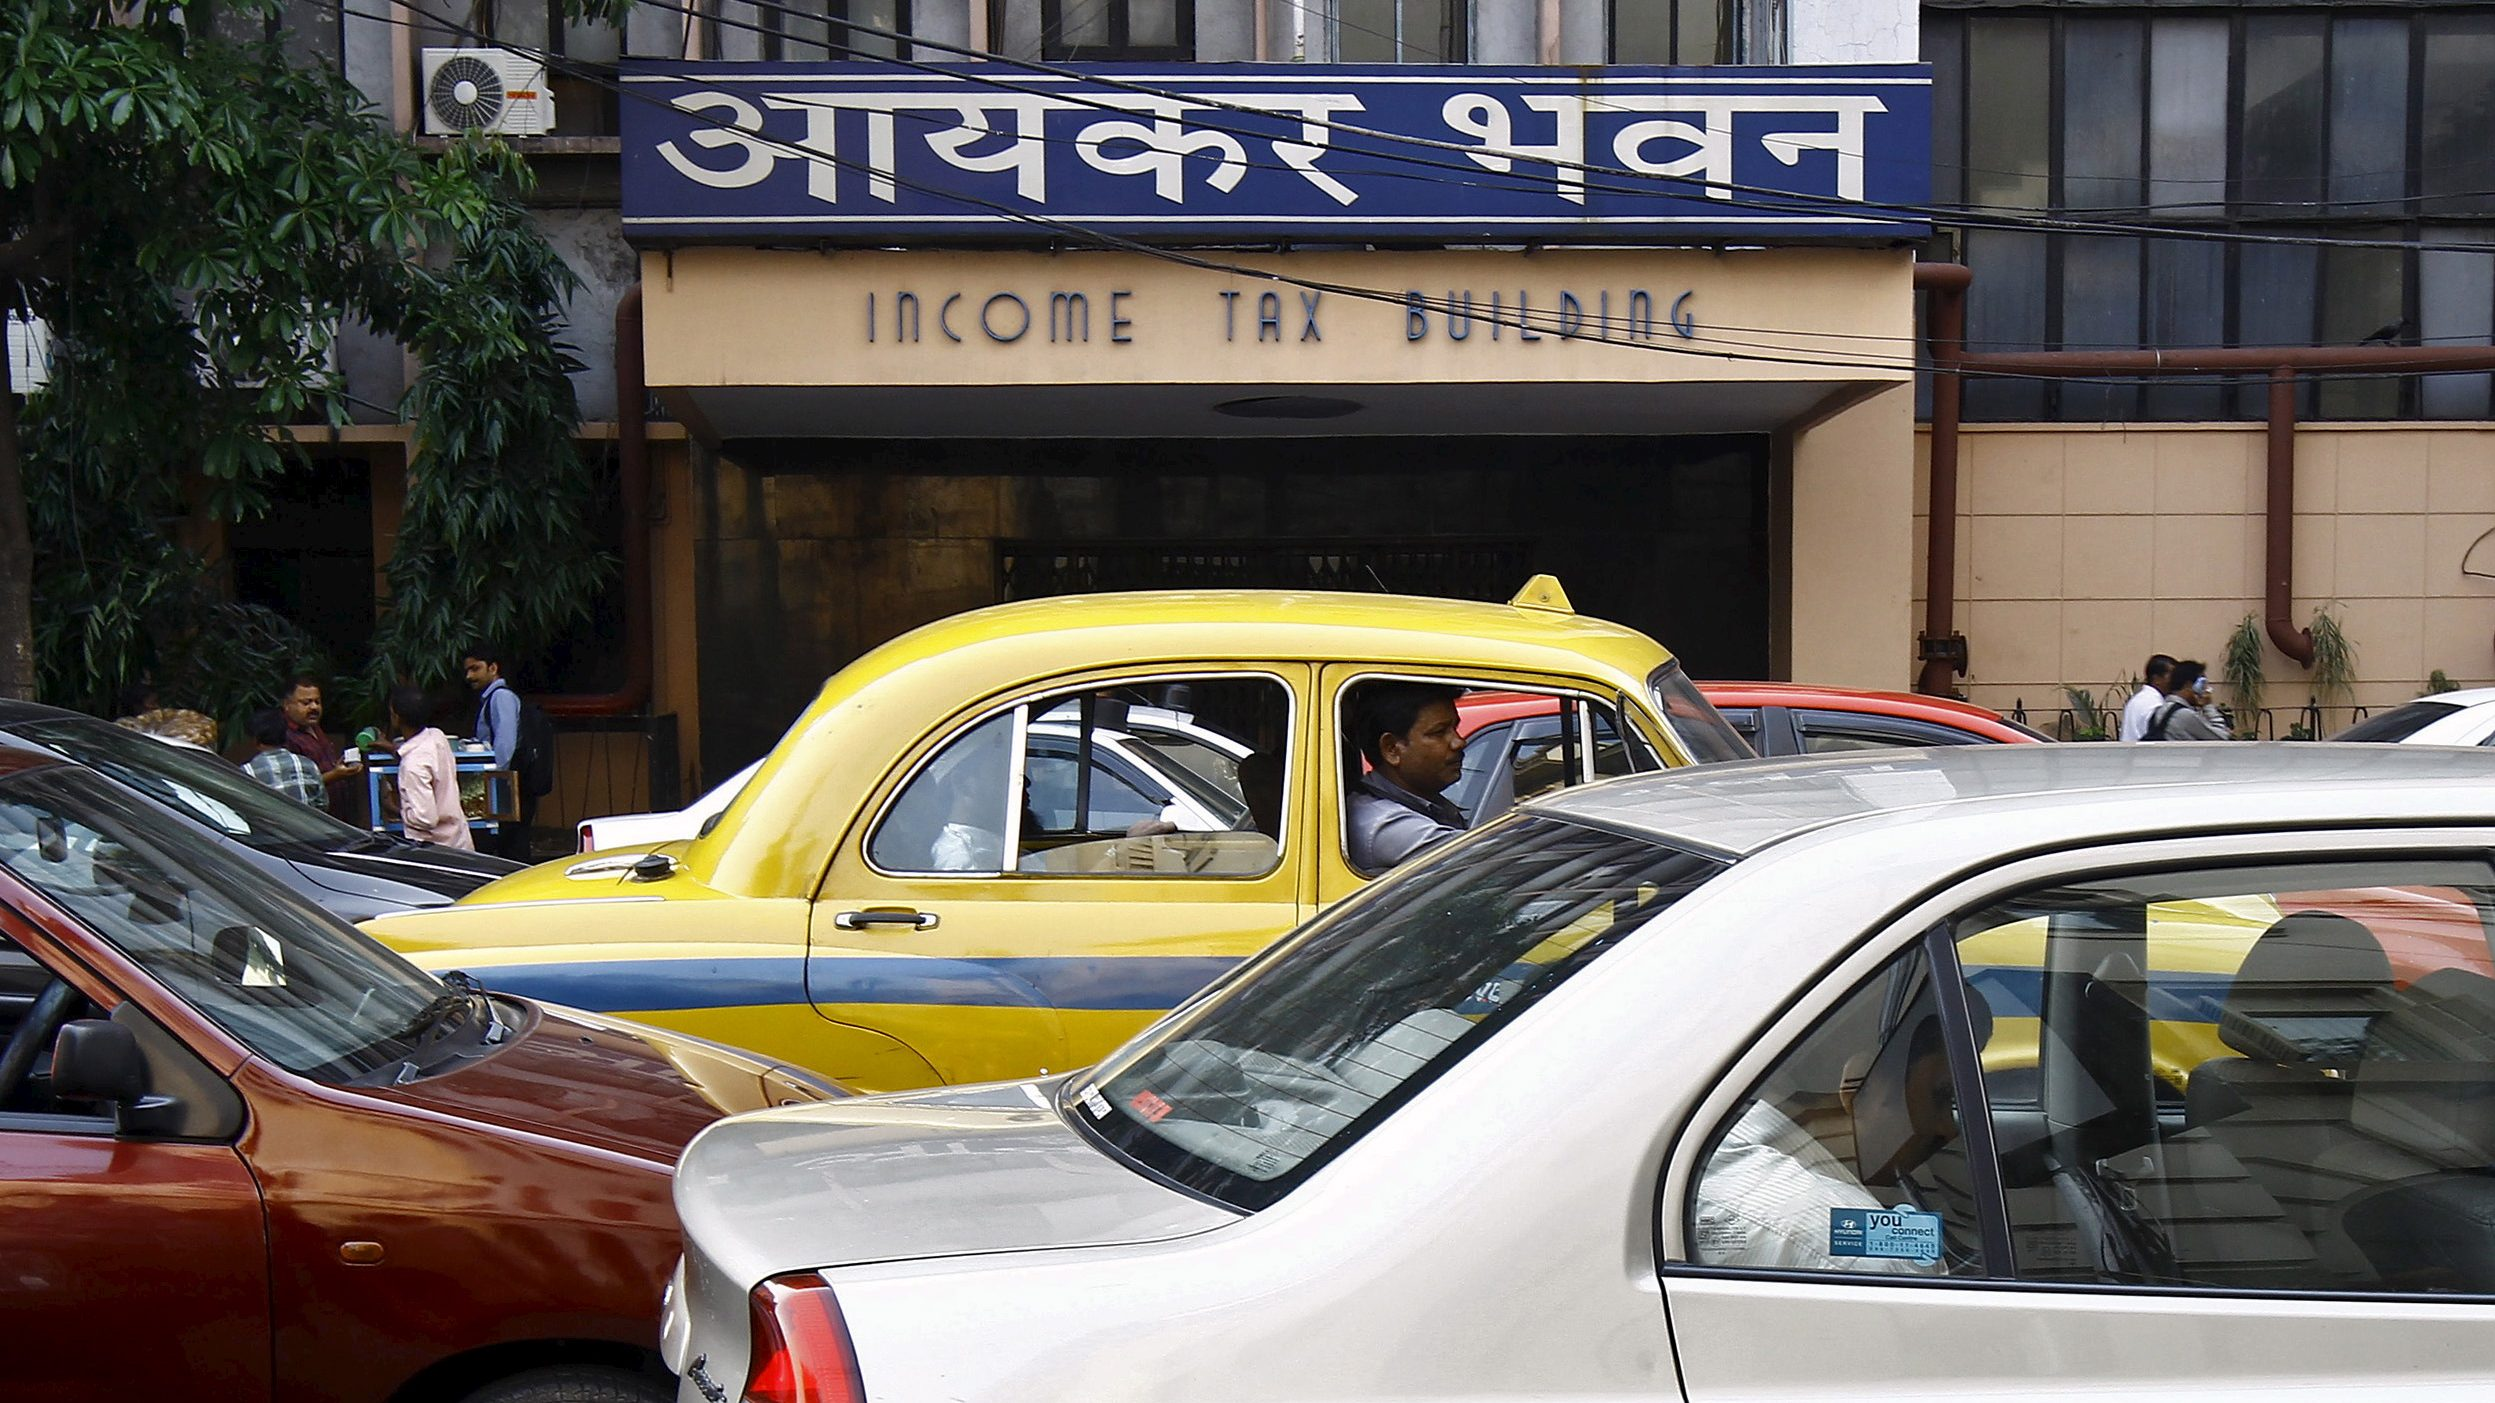 Commuters sit in cars in front of the income tax building during a traffic jam in Kolkata